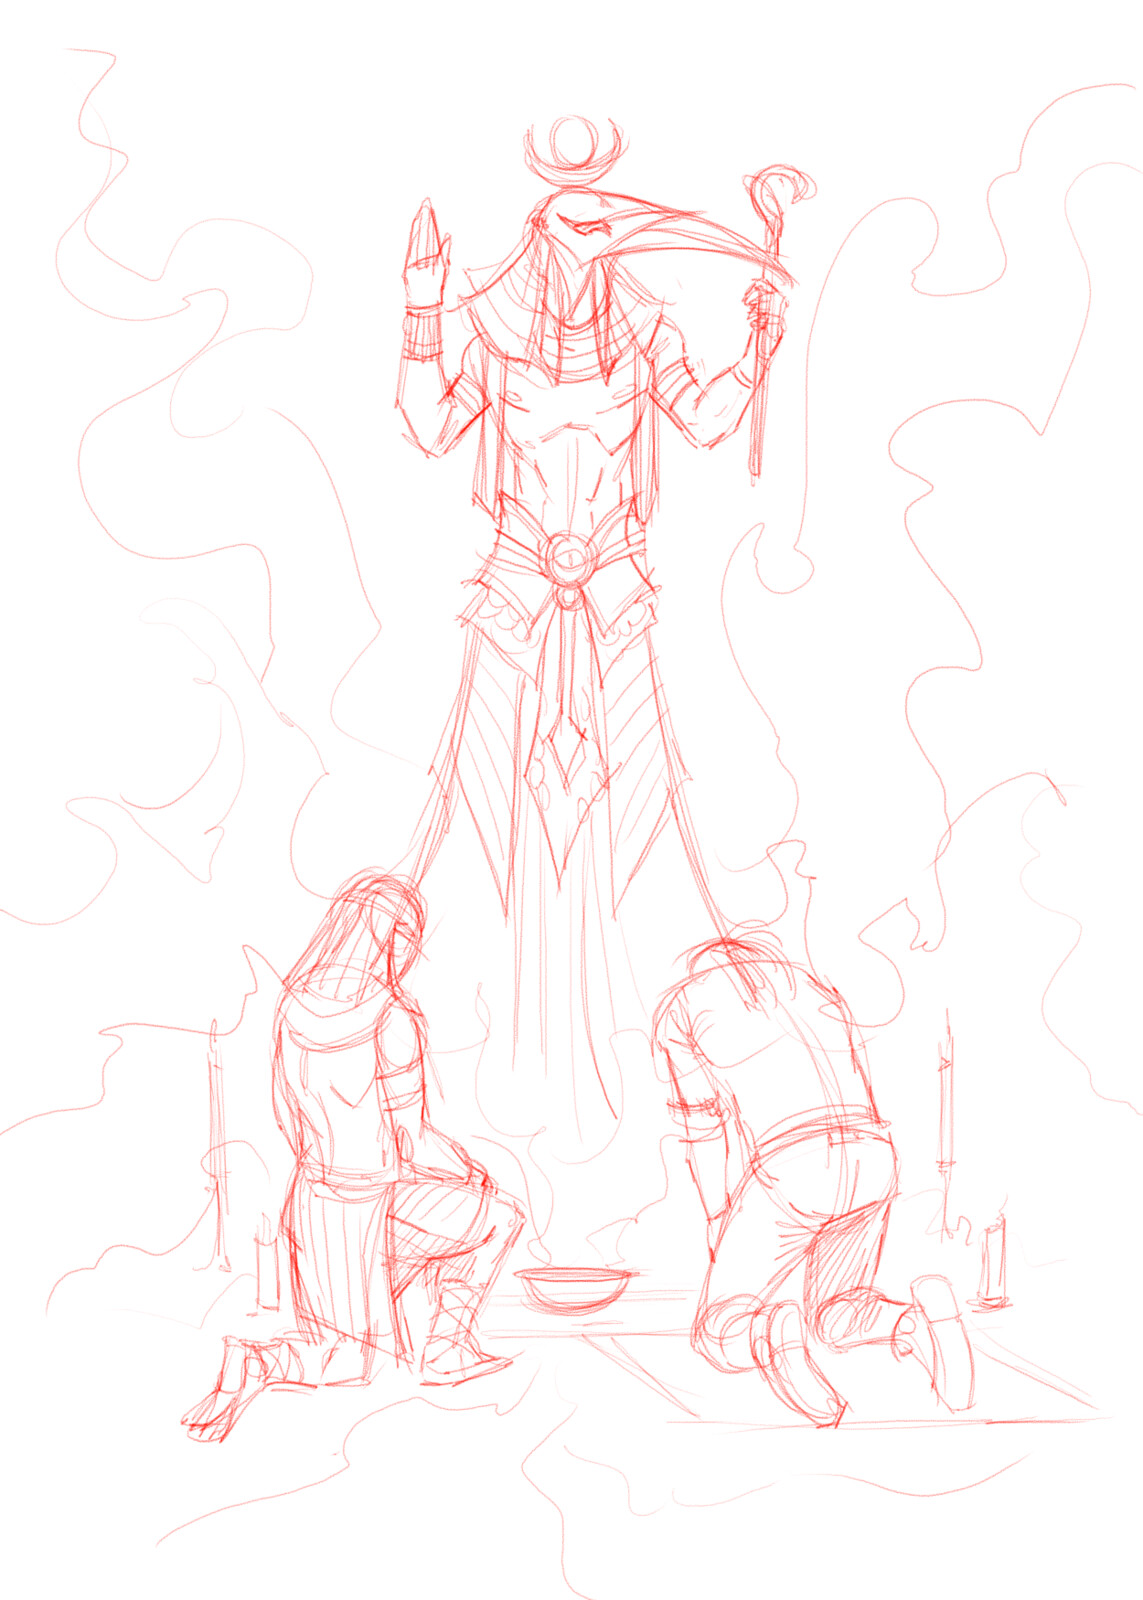 Book of Thoth Page 3 Penciled